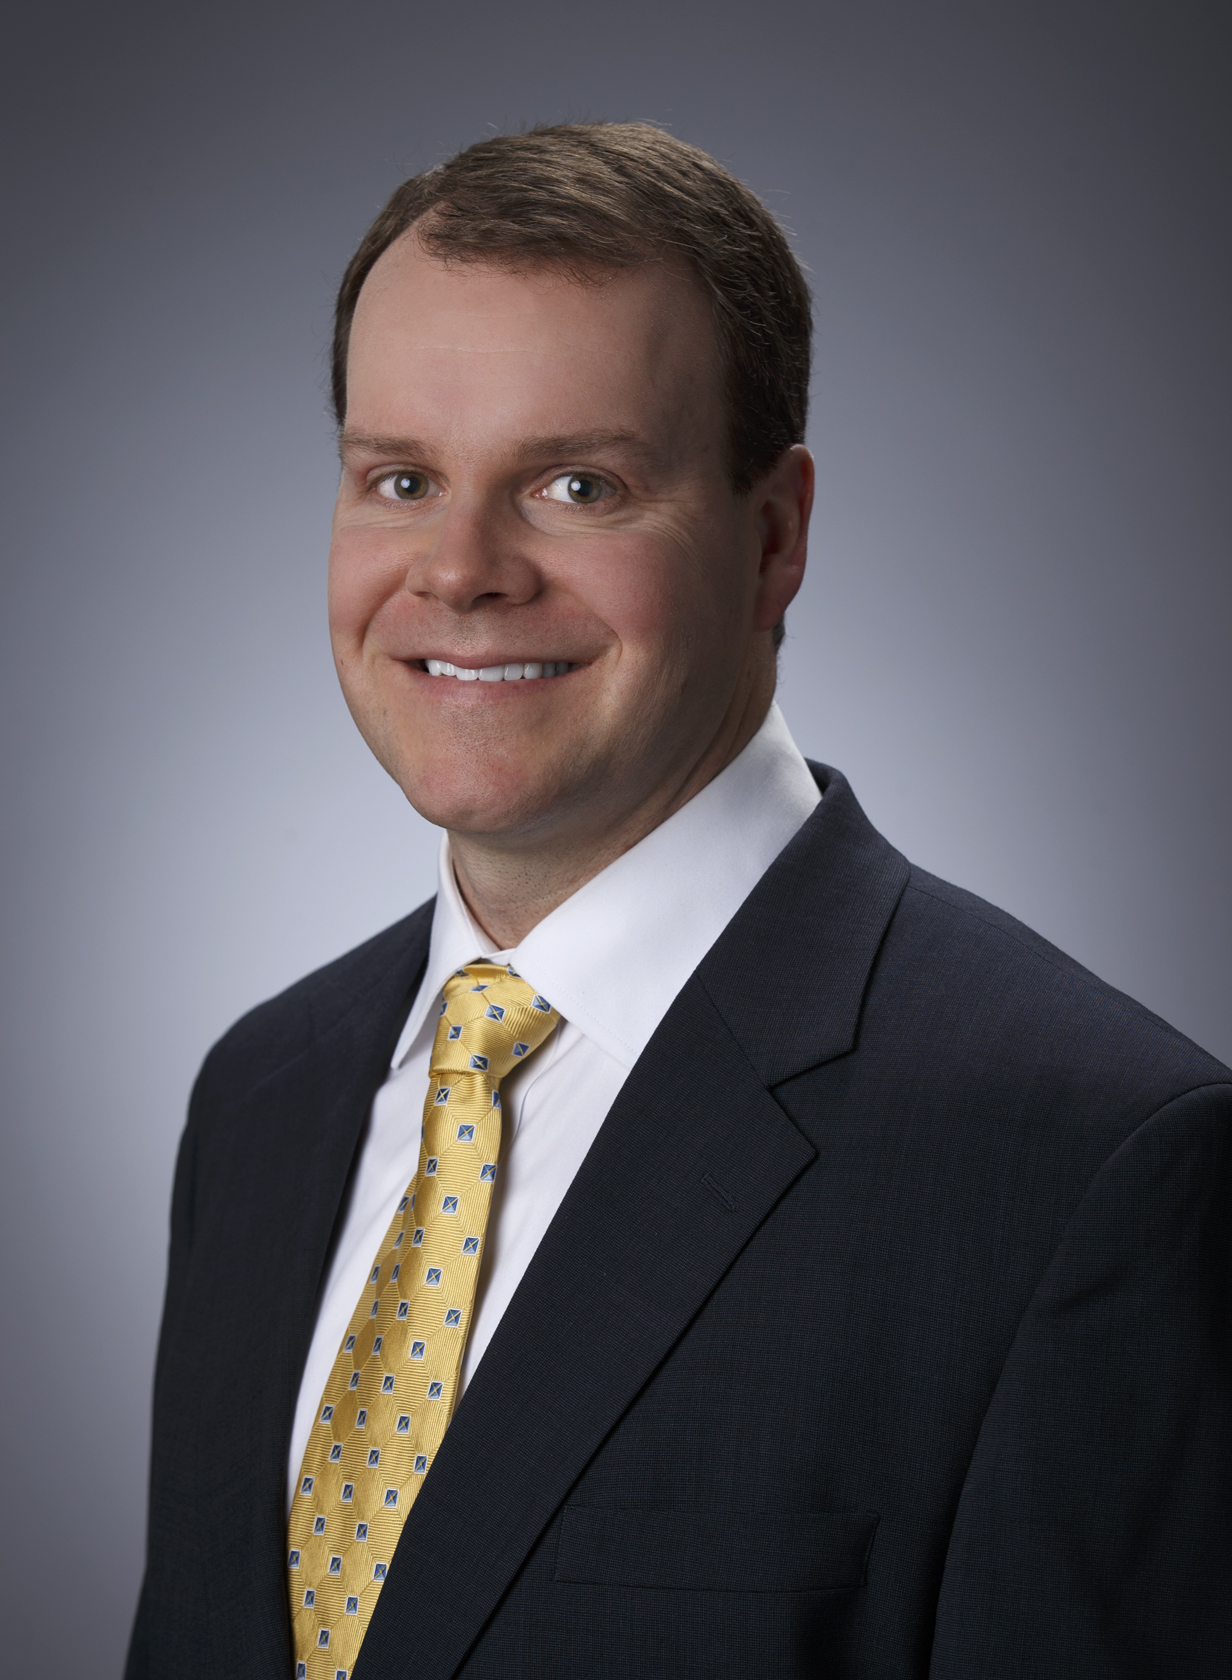 Lowe's Executive Brent Kirby